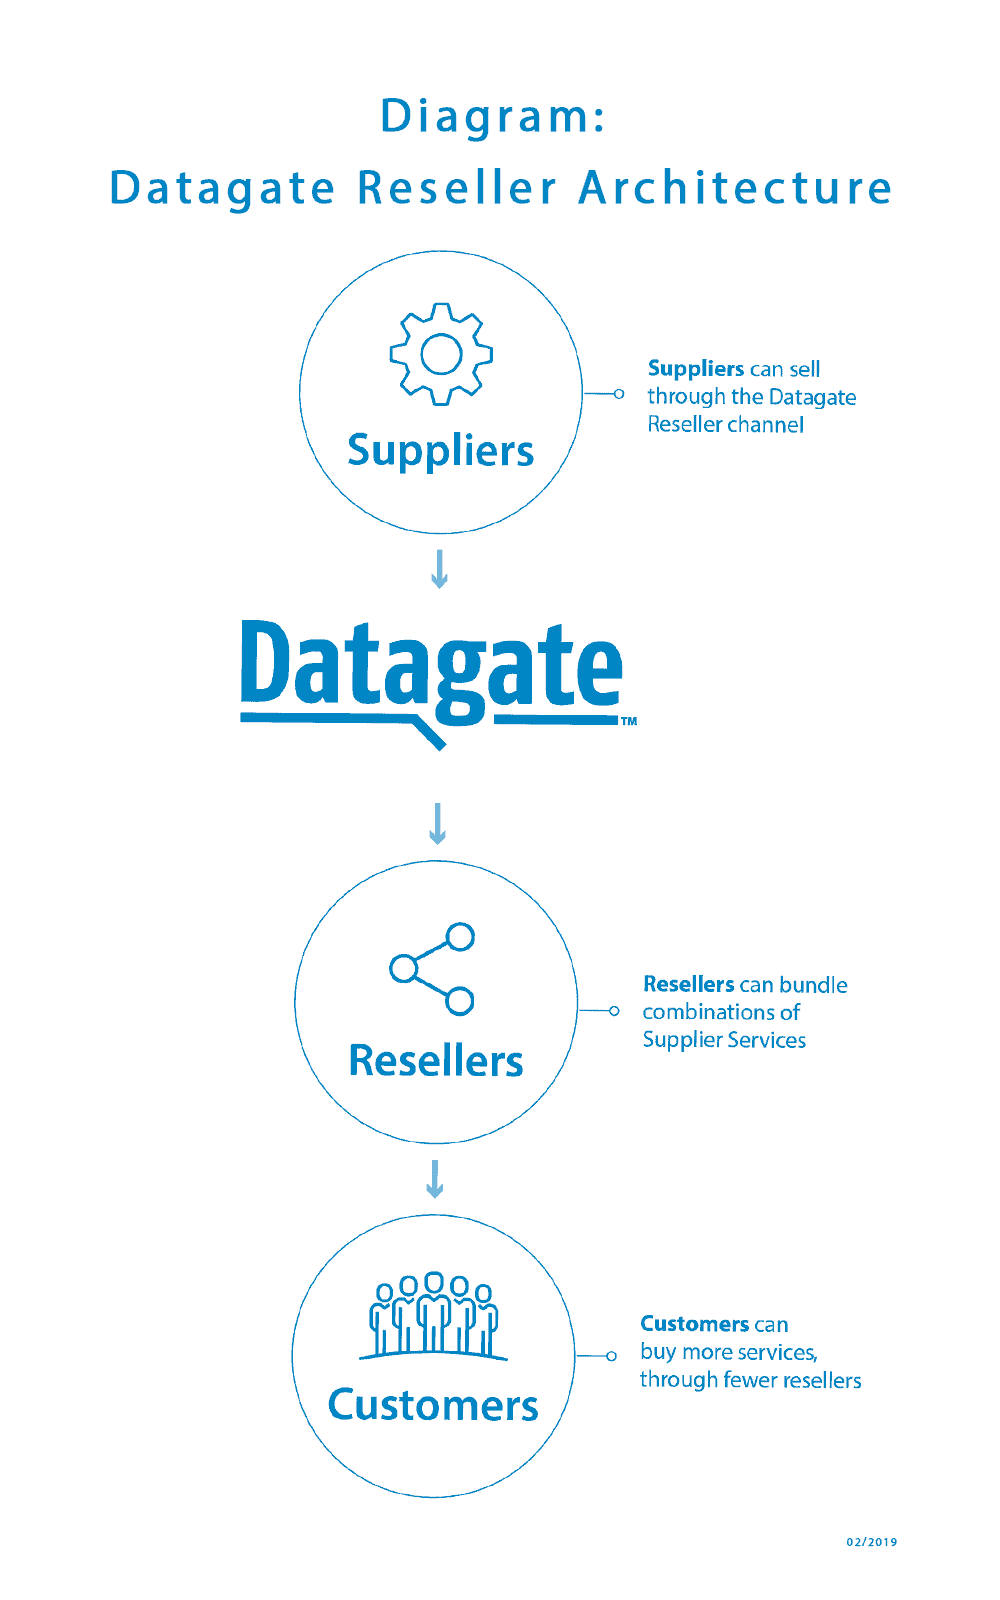 Diagram: Datagate reseller architecture | February 2019